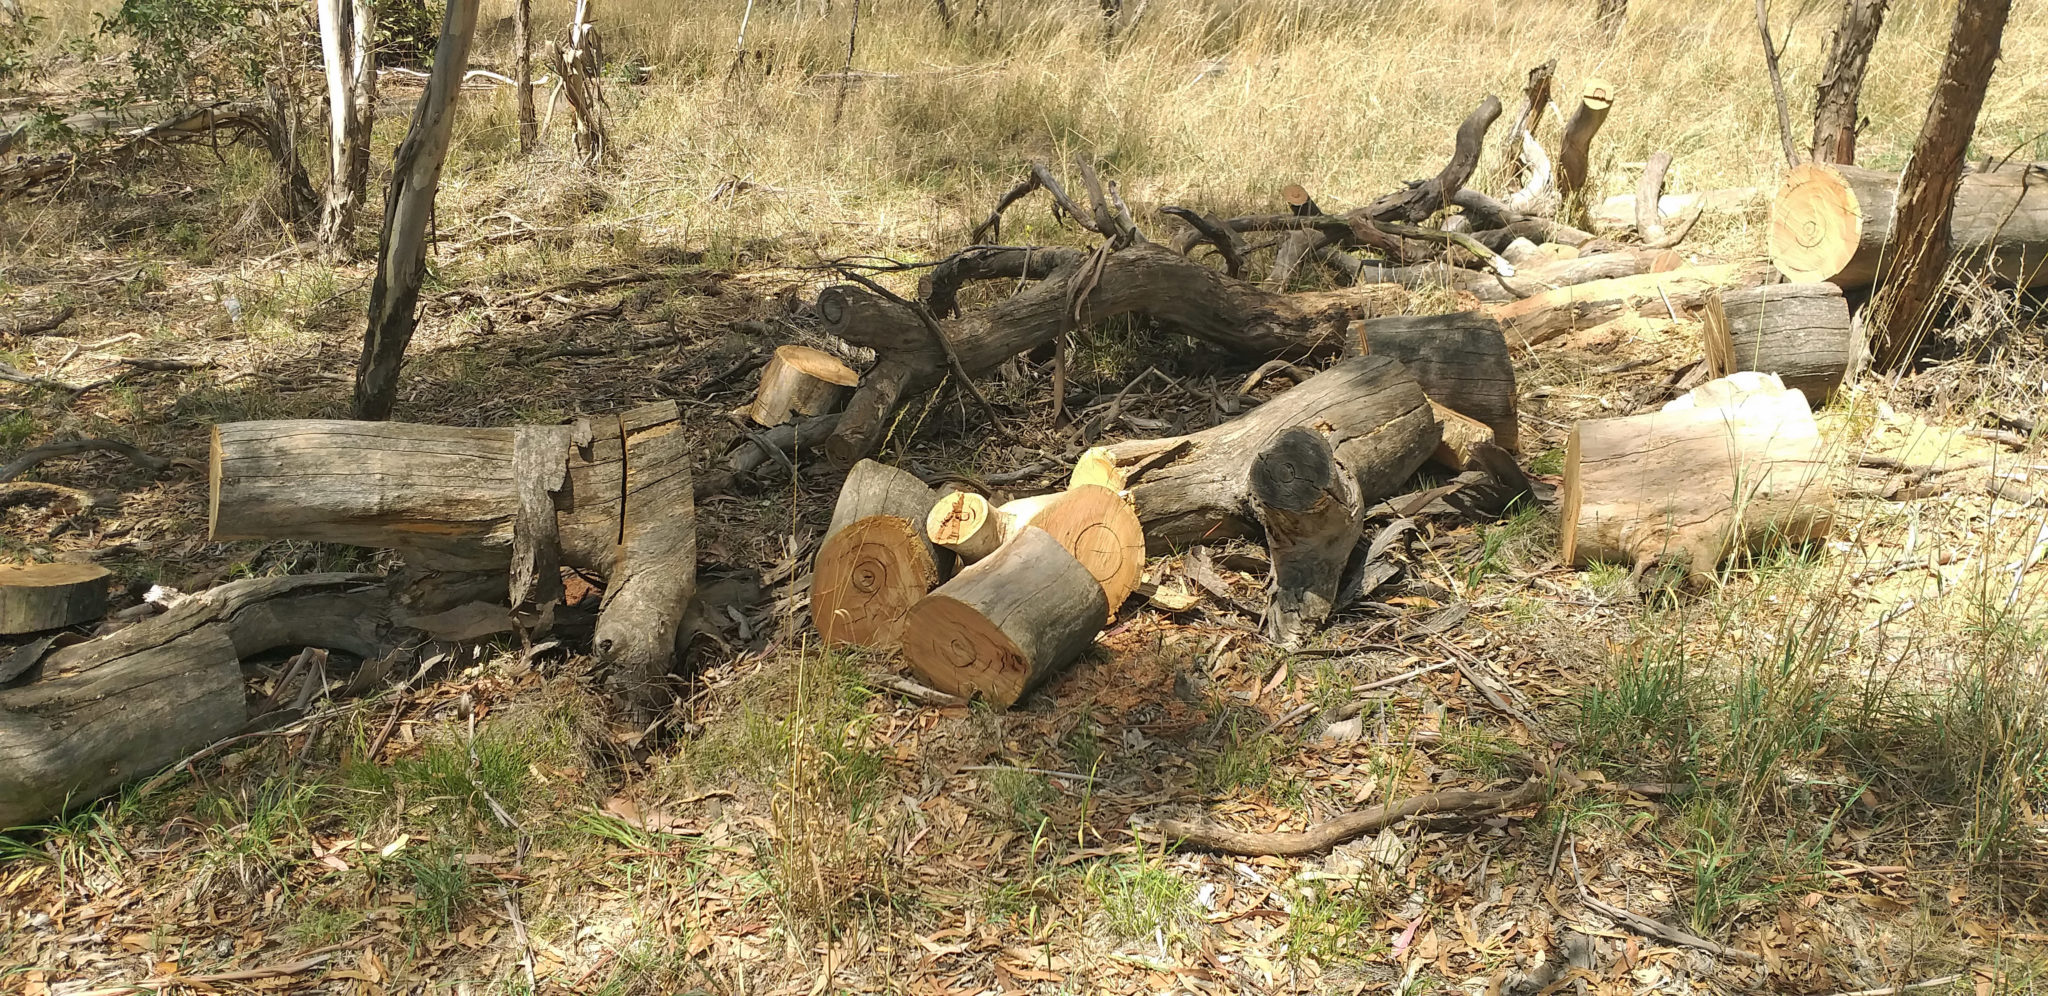 Evidence of illegal firewood collection at Bloomfield Park